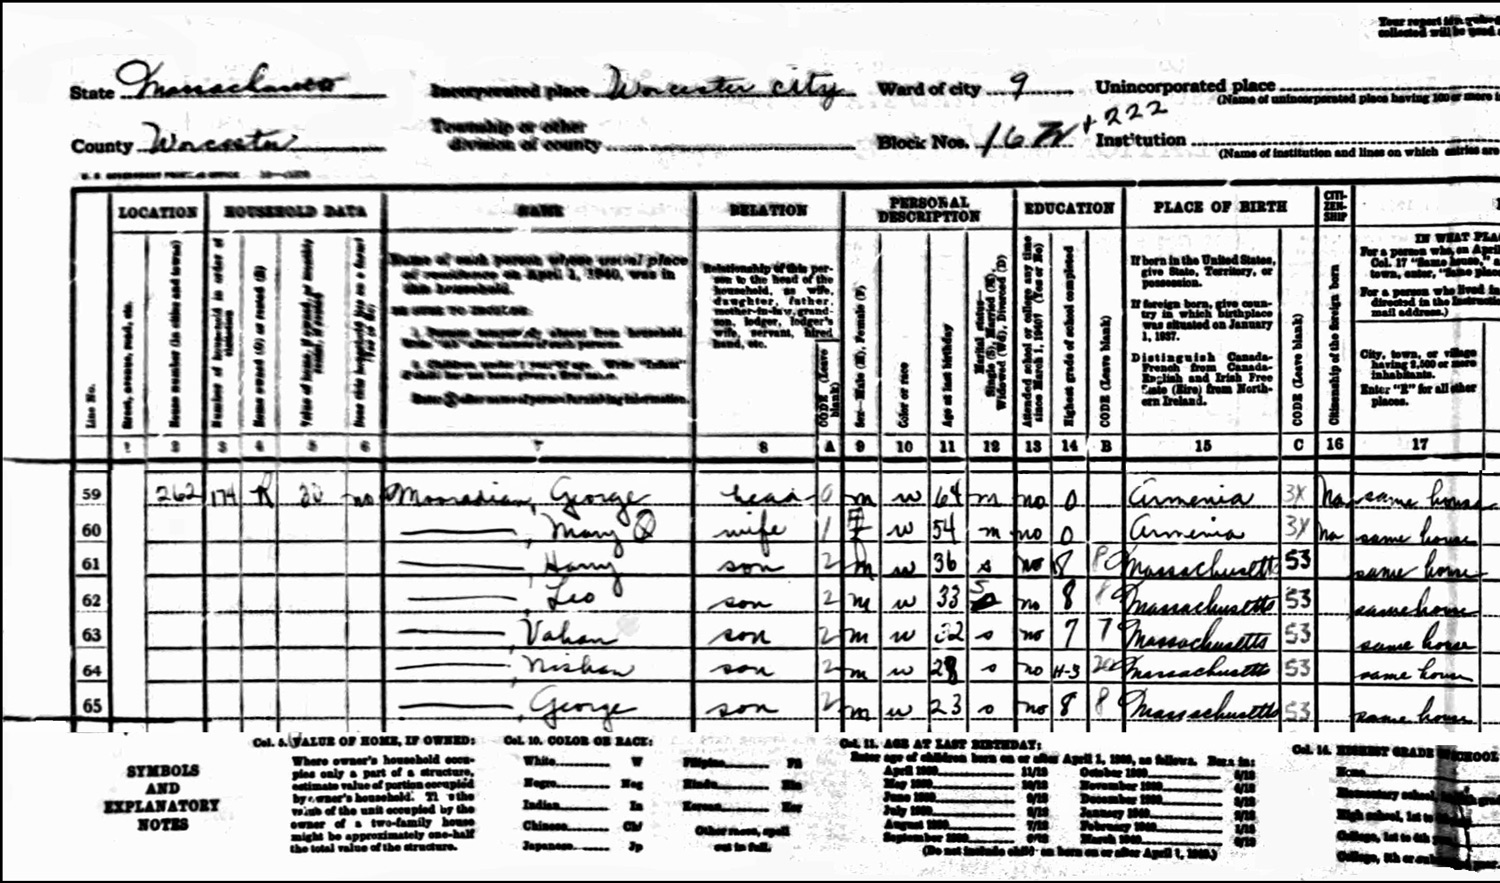 1940 US Federal Census Record for the George Mooradian Household (Left)